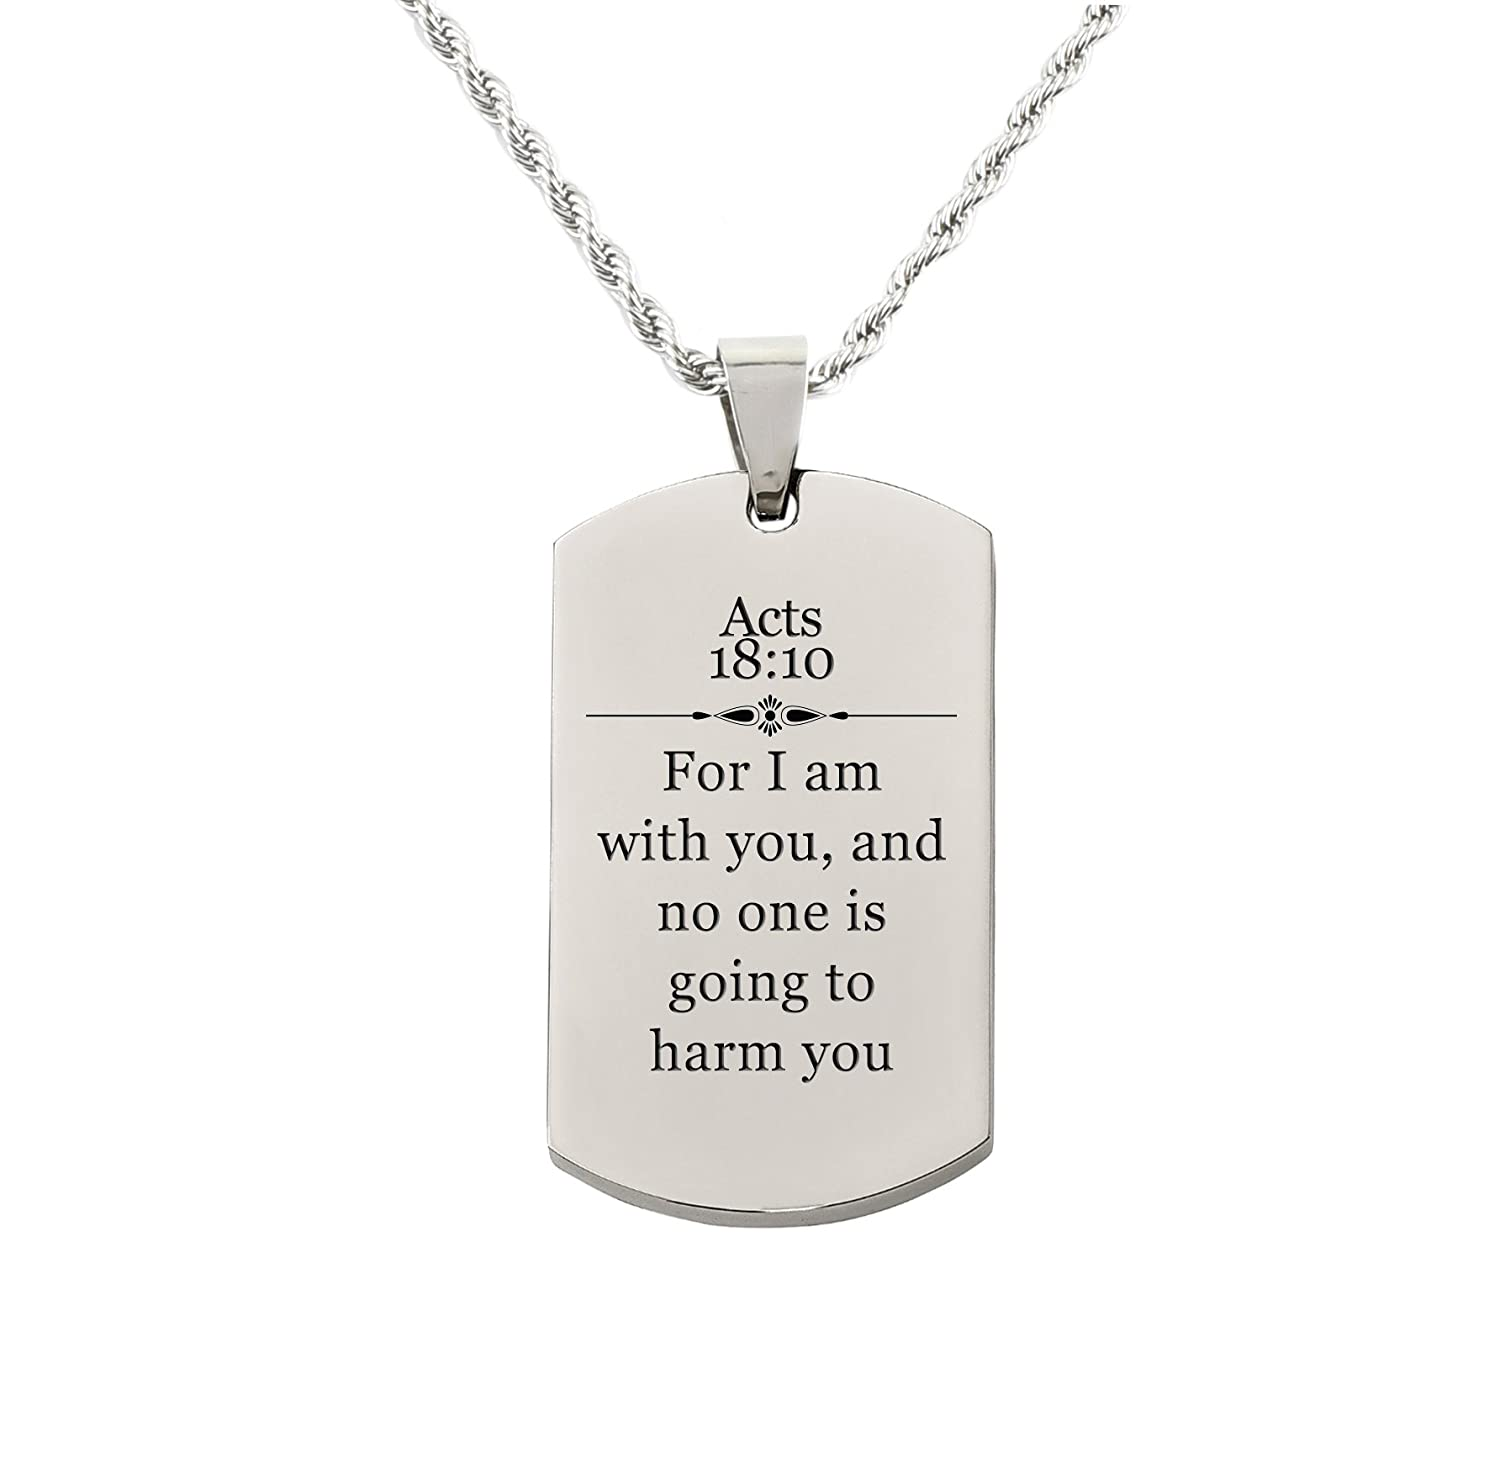 Pink Box Holy Scripture Tag Necklace in Solid Stainless Steel - ACTS 18:10